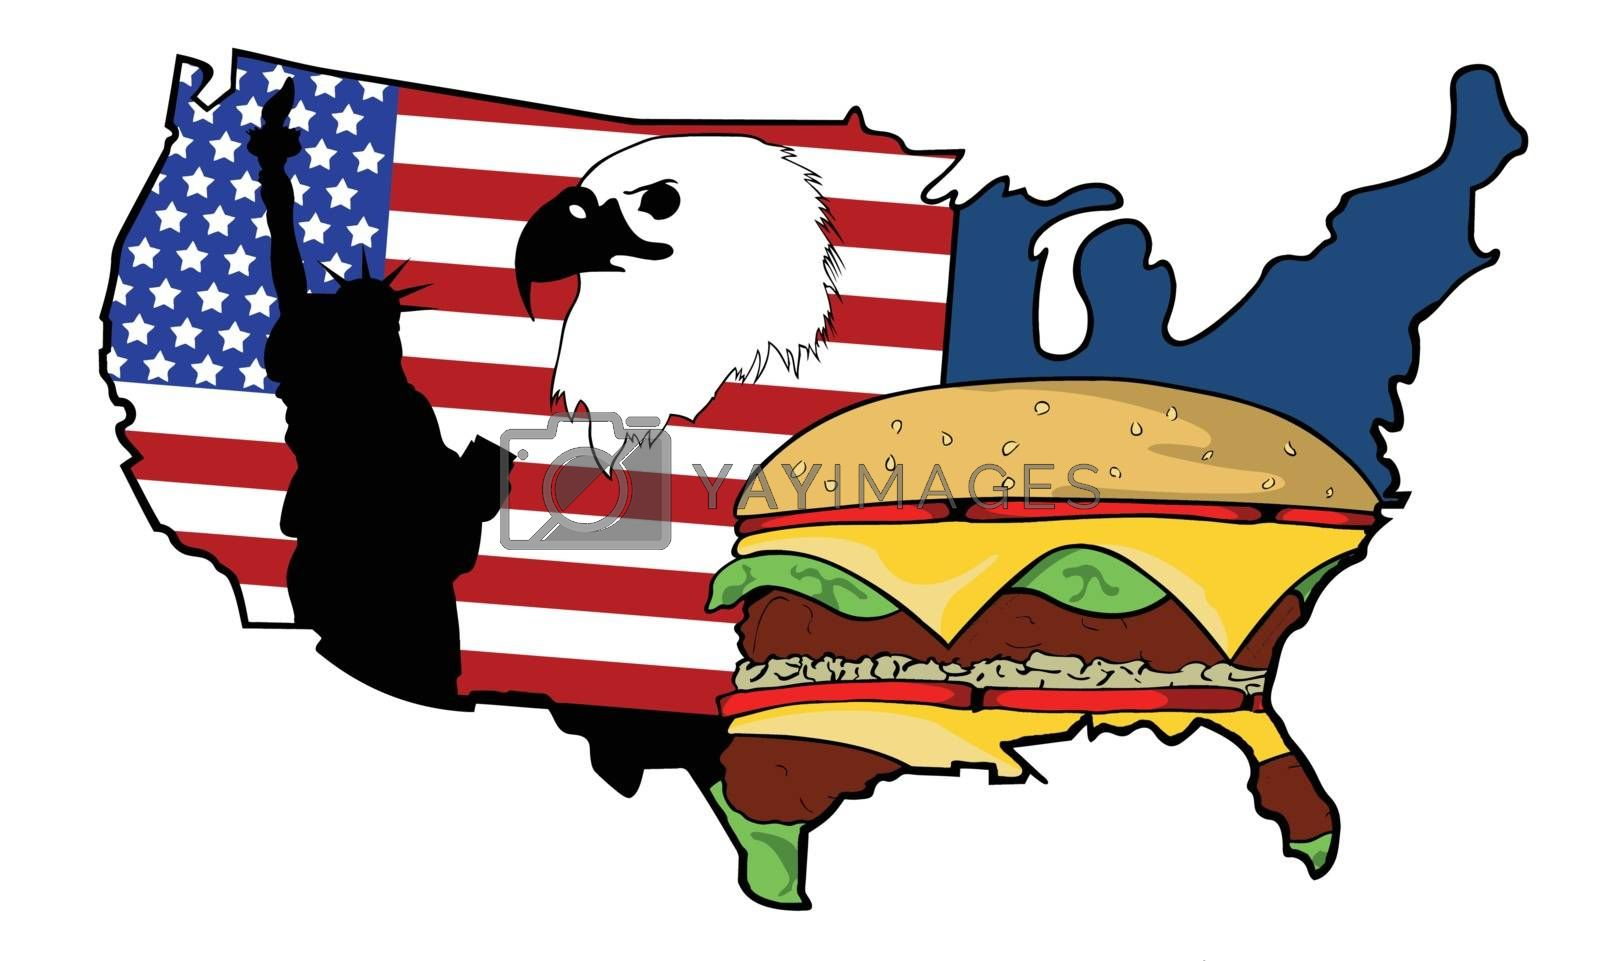 U.S.A. map with iconic elements